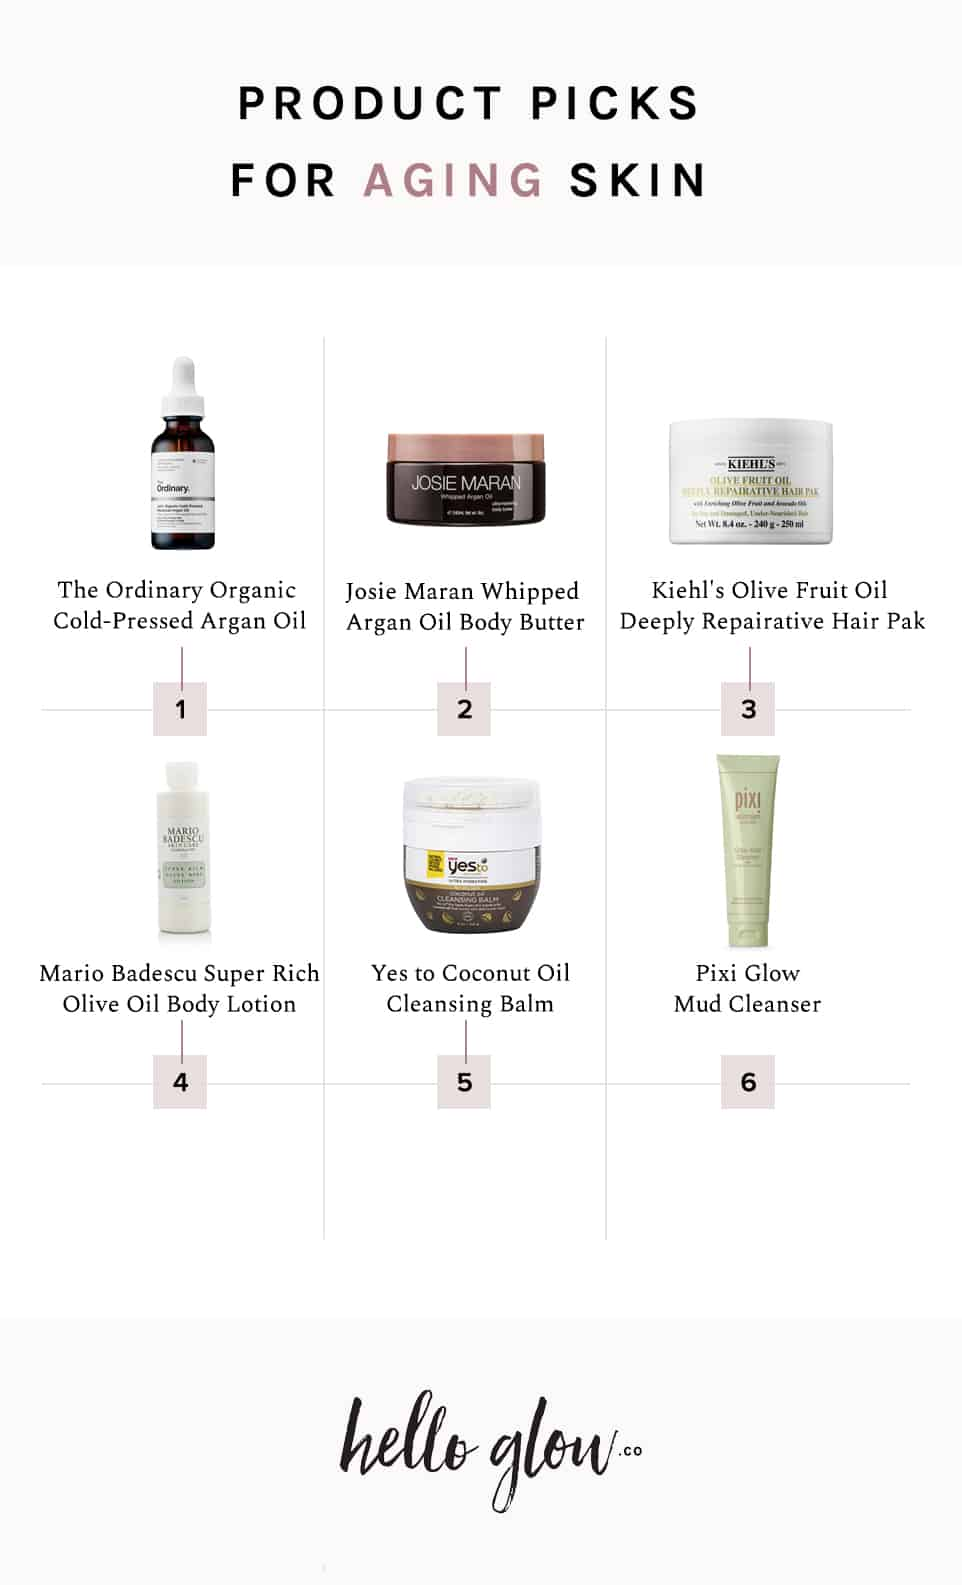 Product picks for aging skin - Hello Glow